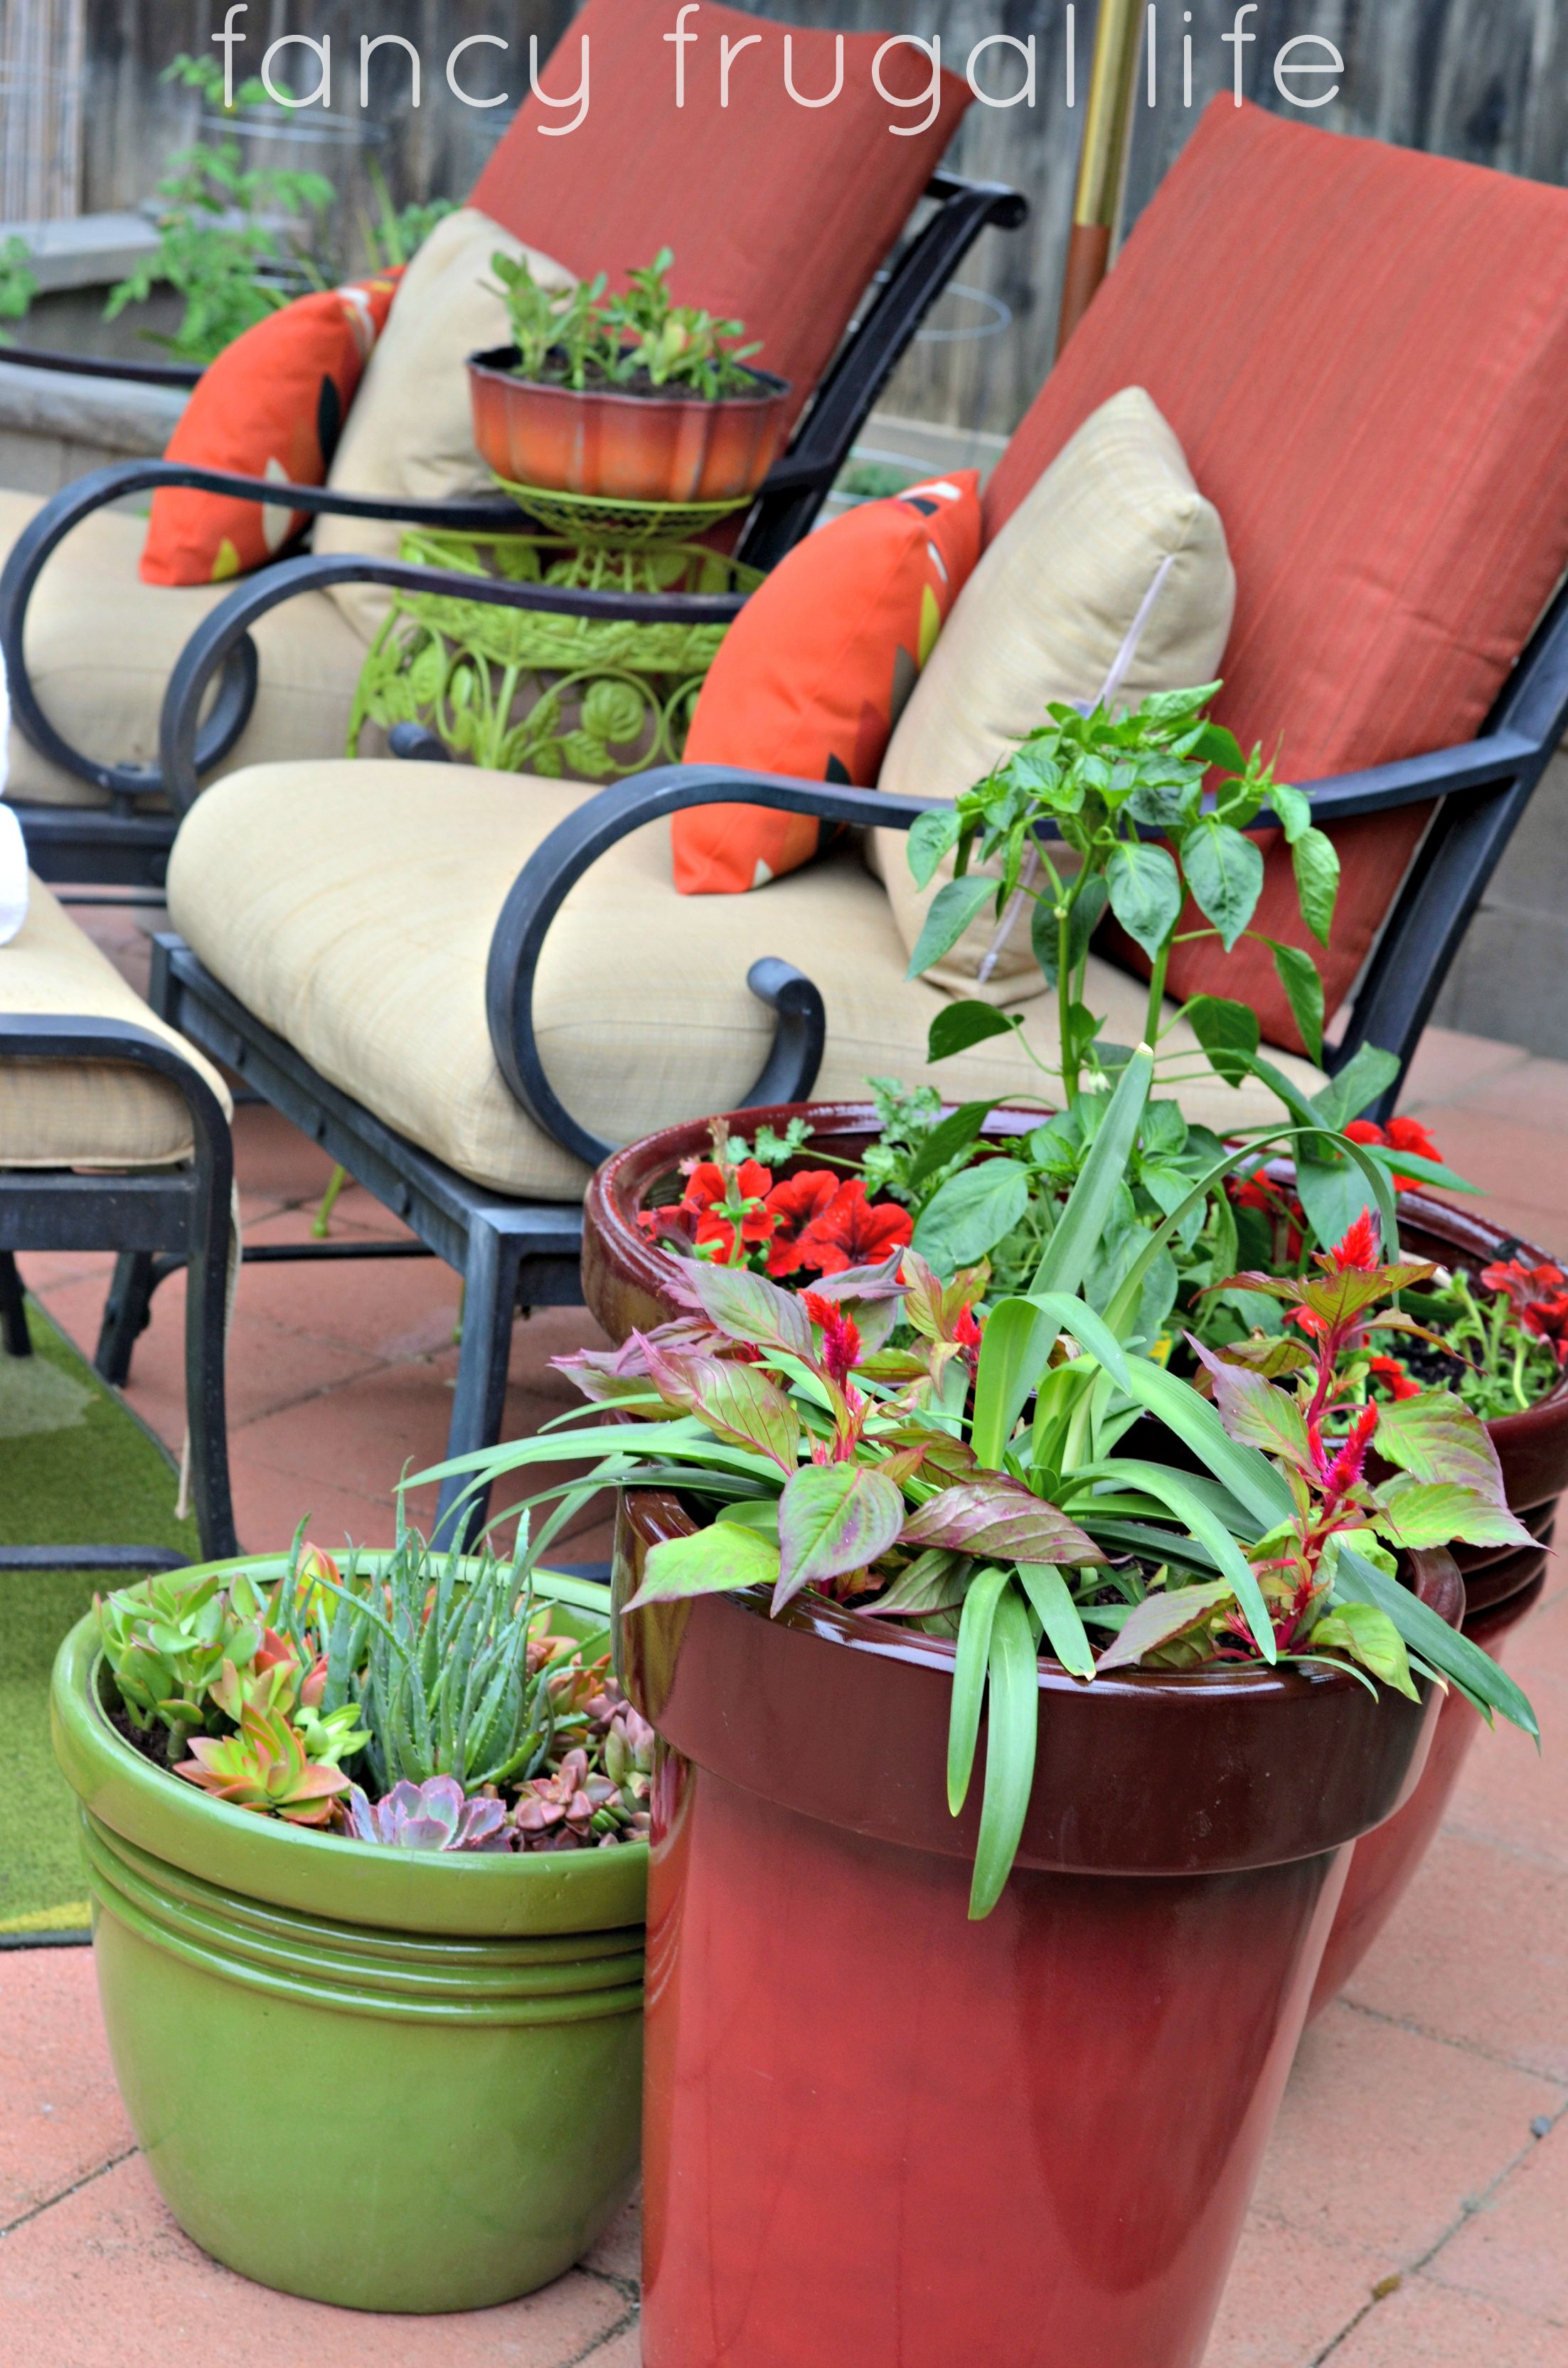 6f25116789c6c8f90a845e83ceb122d0 - Better Homes And Gardens Potted Plants Ideas